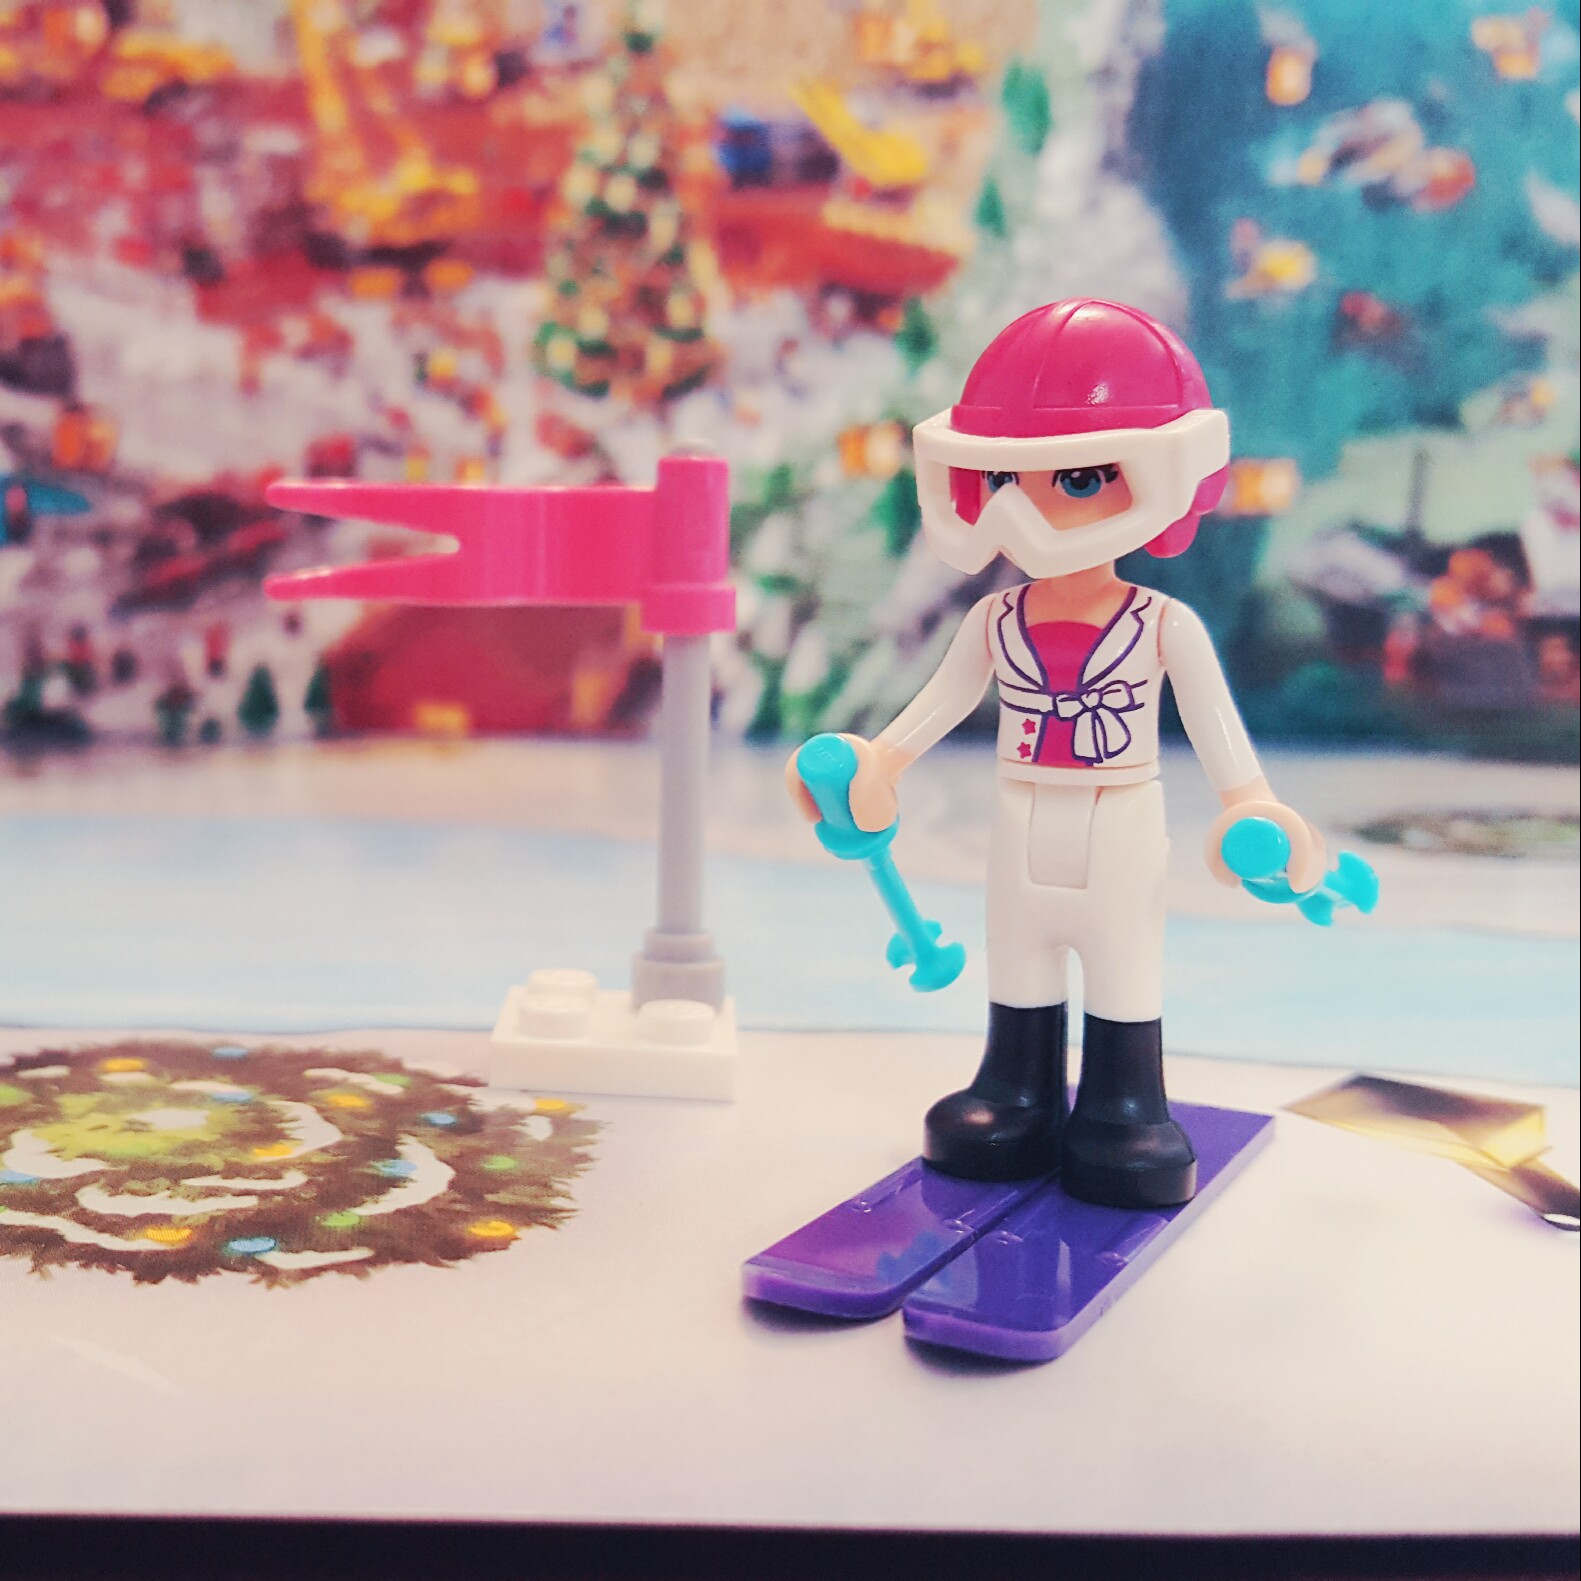 """""""On your left!"""" - Day 6 Ski Equipment from LEGO Friends Advent Calendar"""